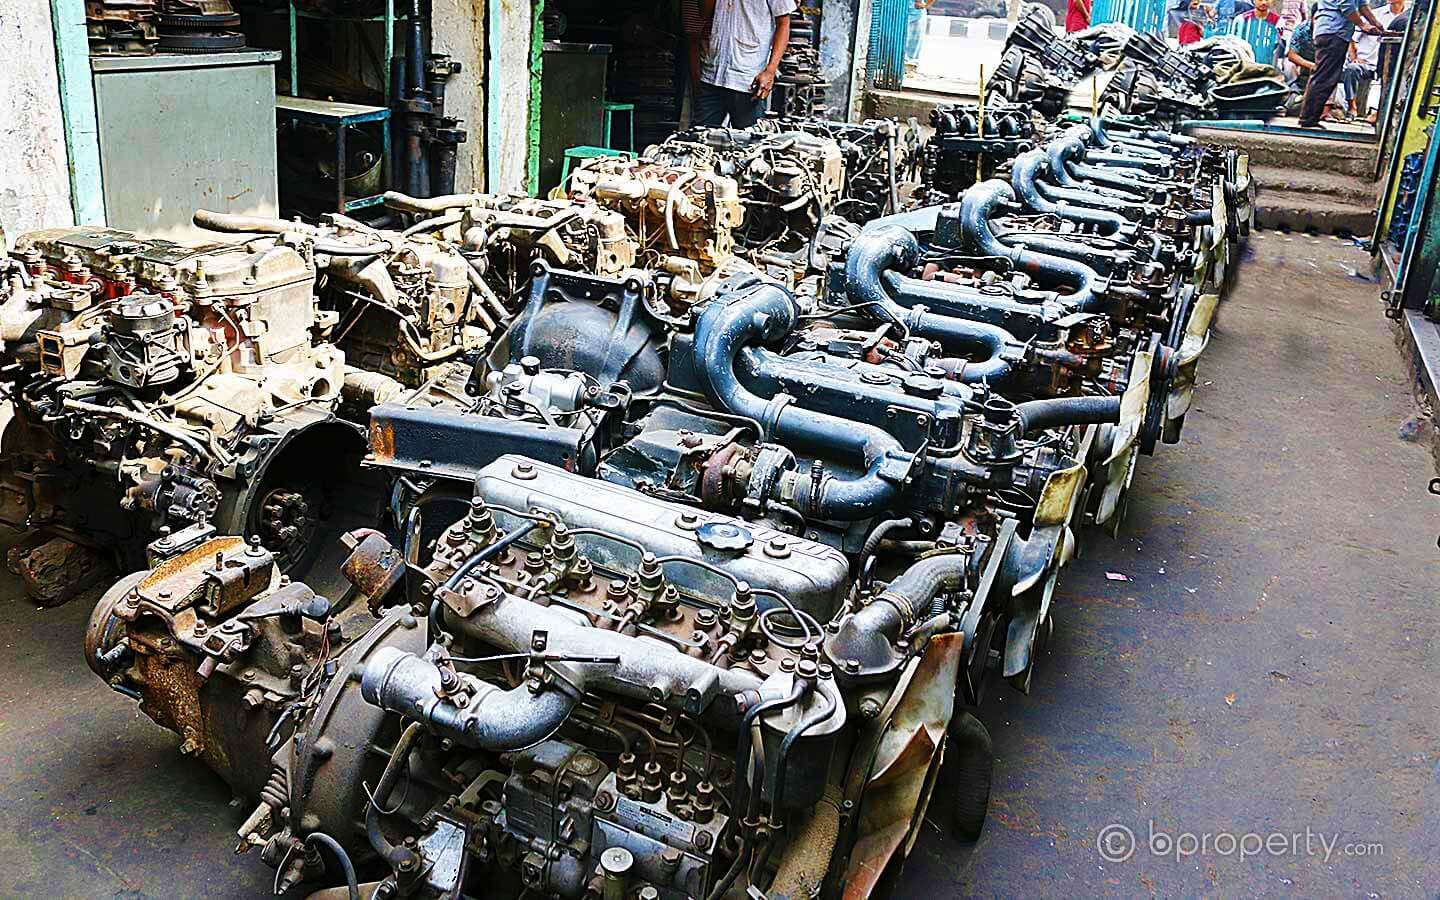 Lined up car engines in Dholaikhal, ready to be replaced as a mod for the new owner